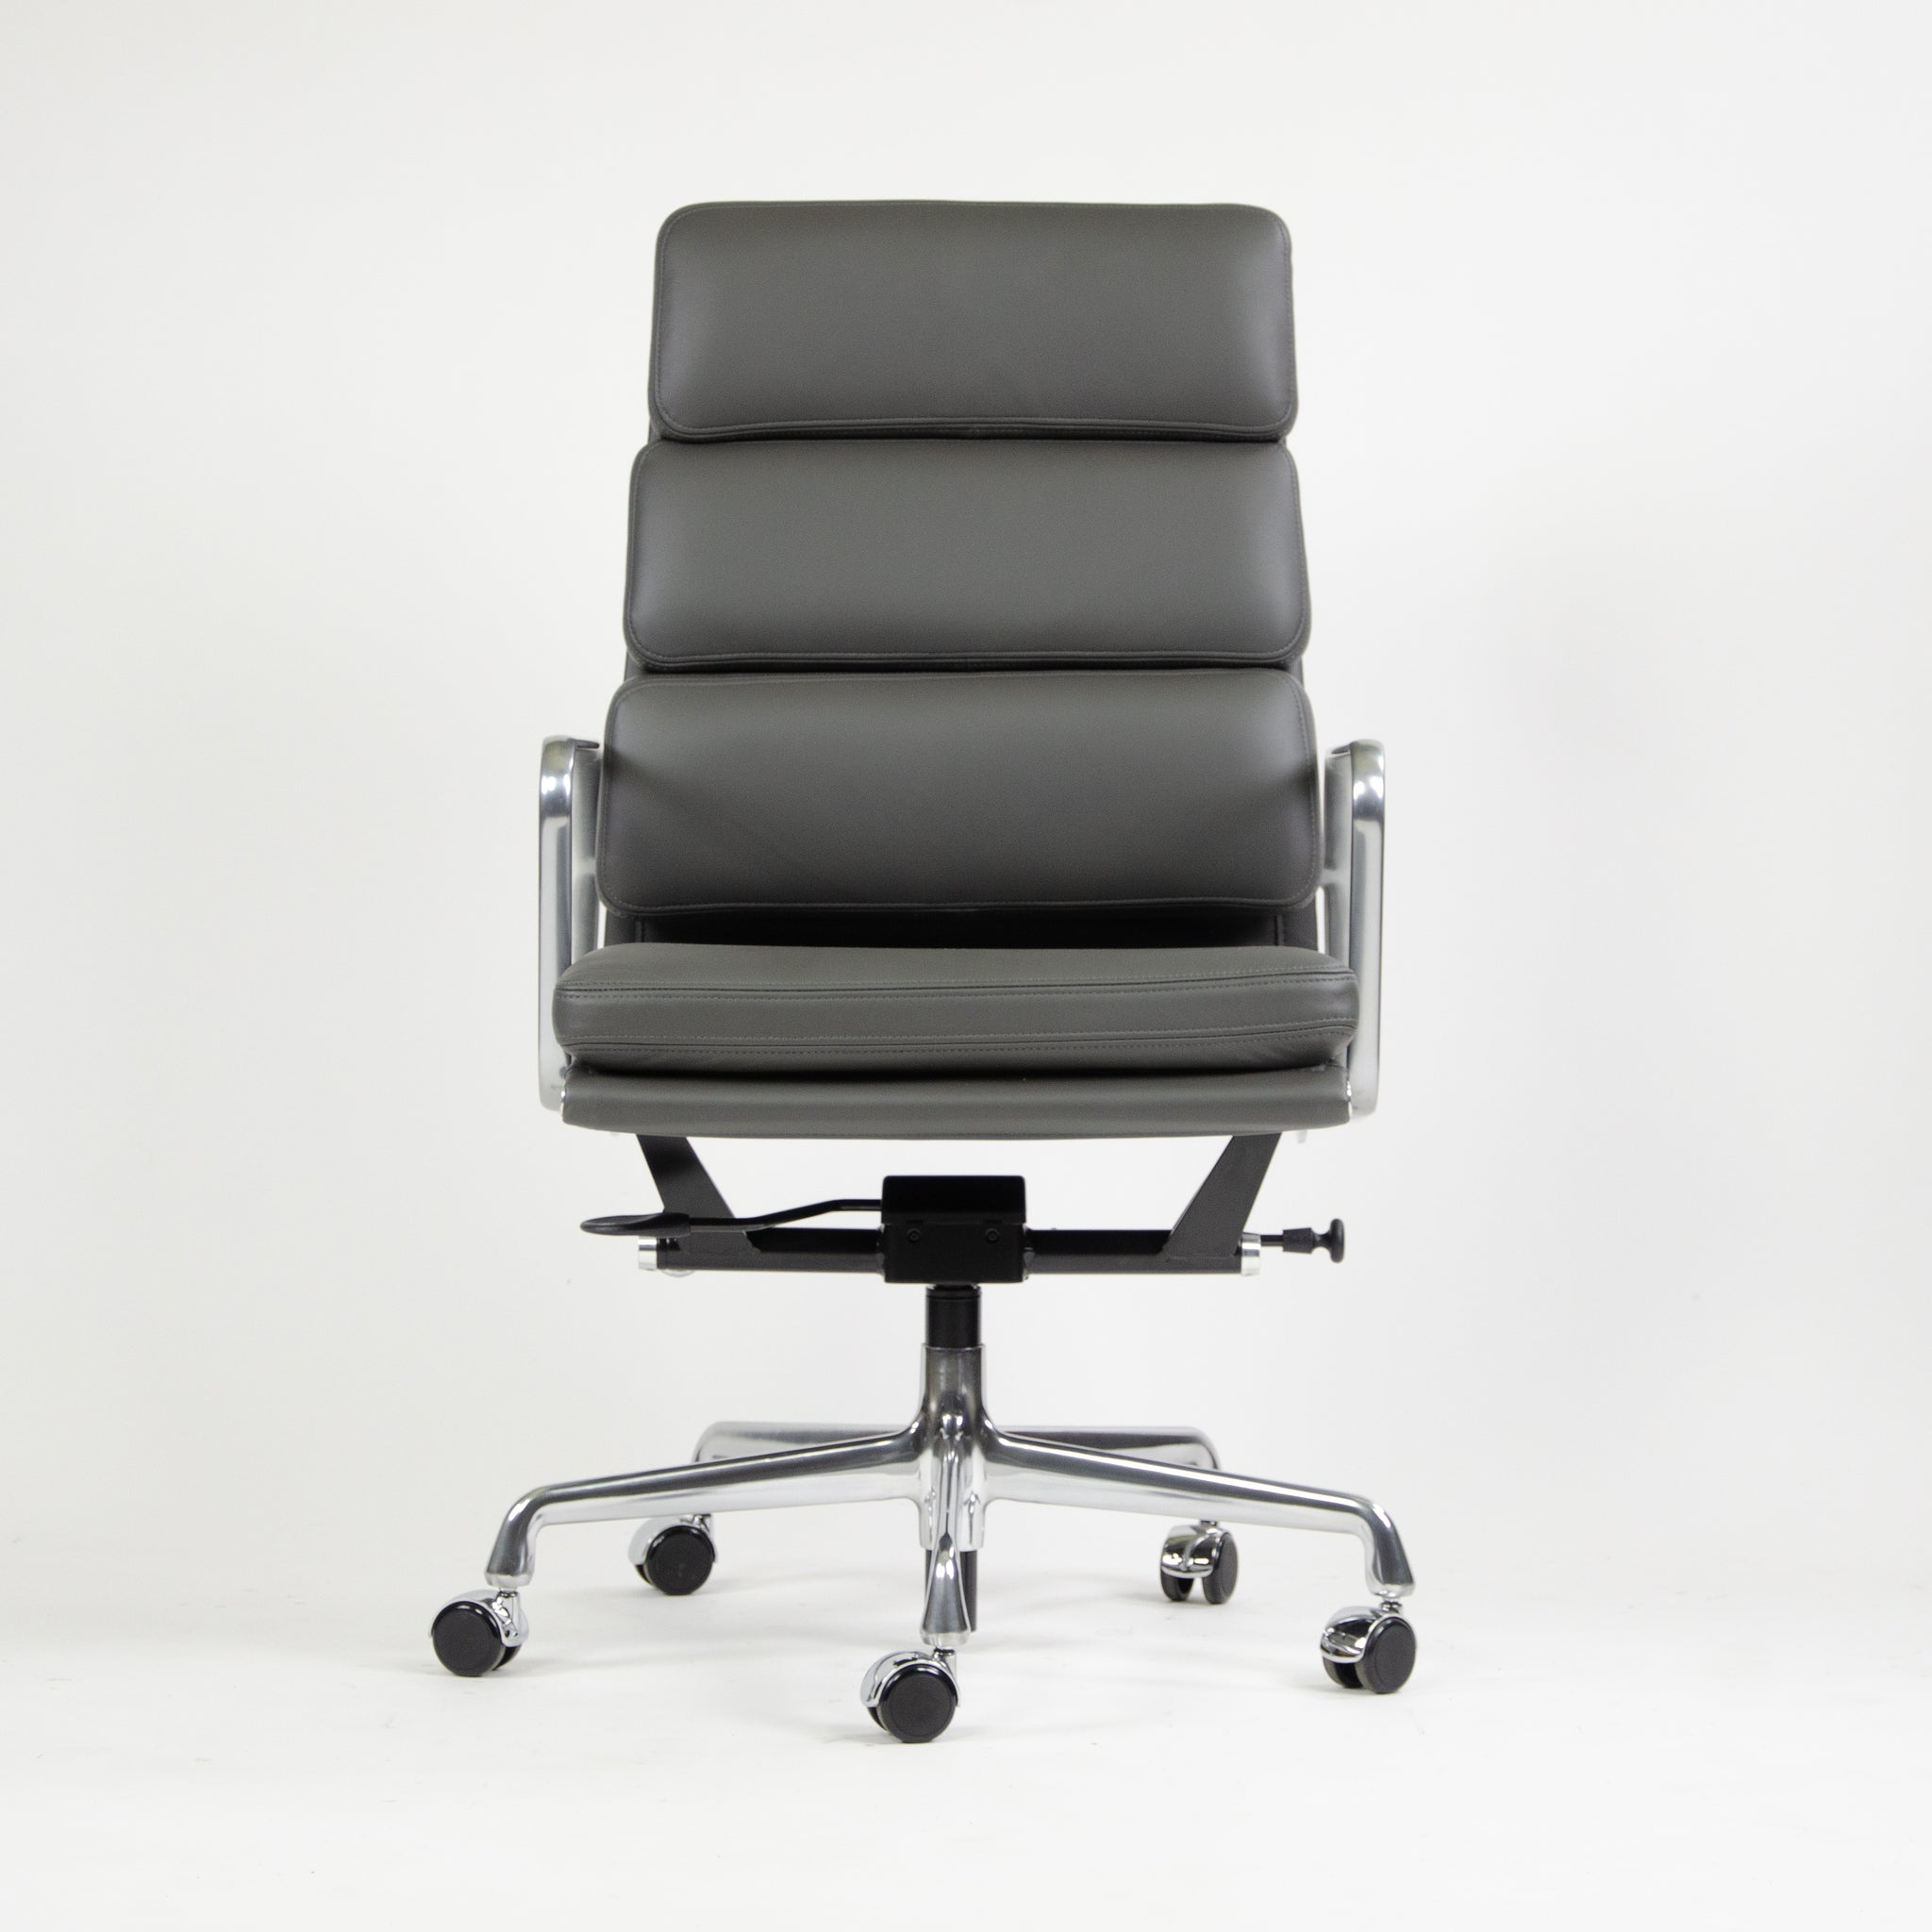 SOLD NEW 2017 Eames Herman Miller High Soft Pad Alu Desk Chairs 9x Graphite Leather